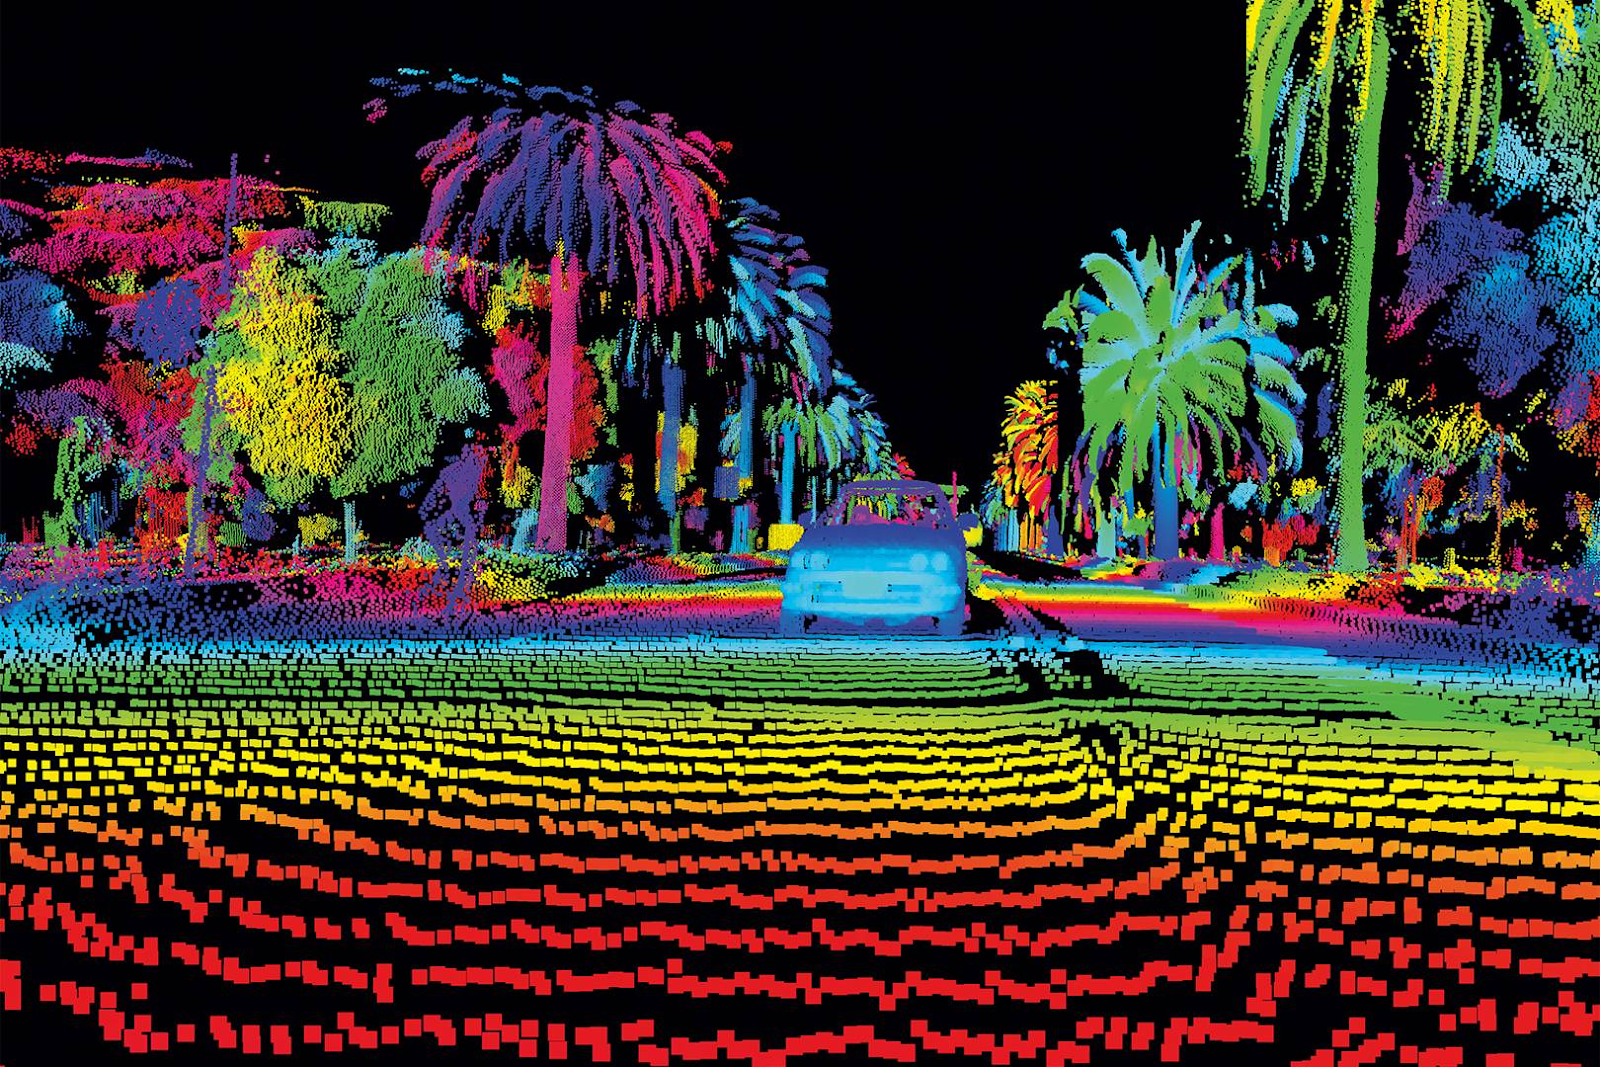 LiDAR - what is it? How does it work? what is it used for?